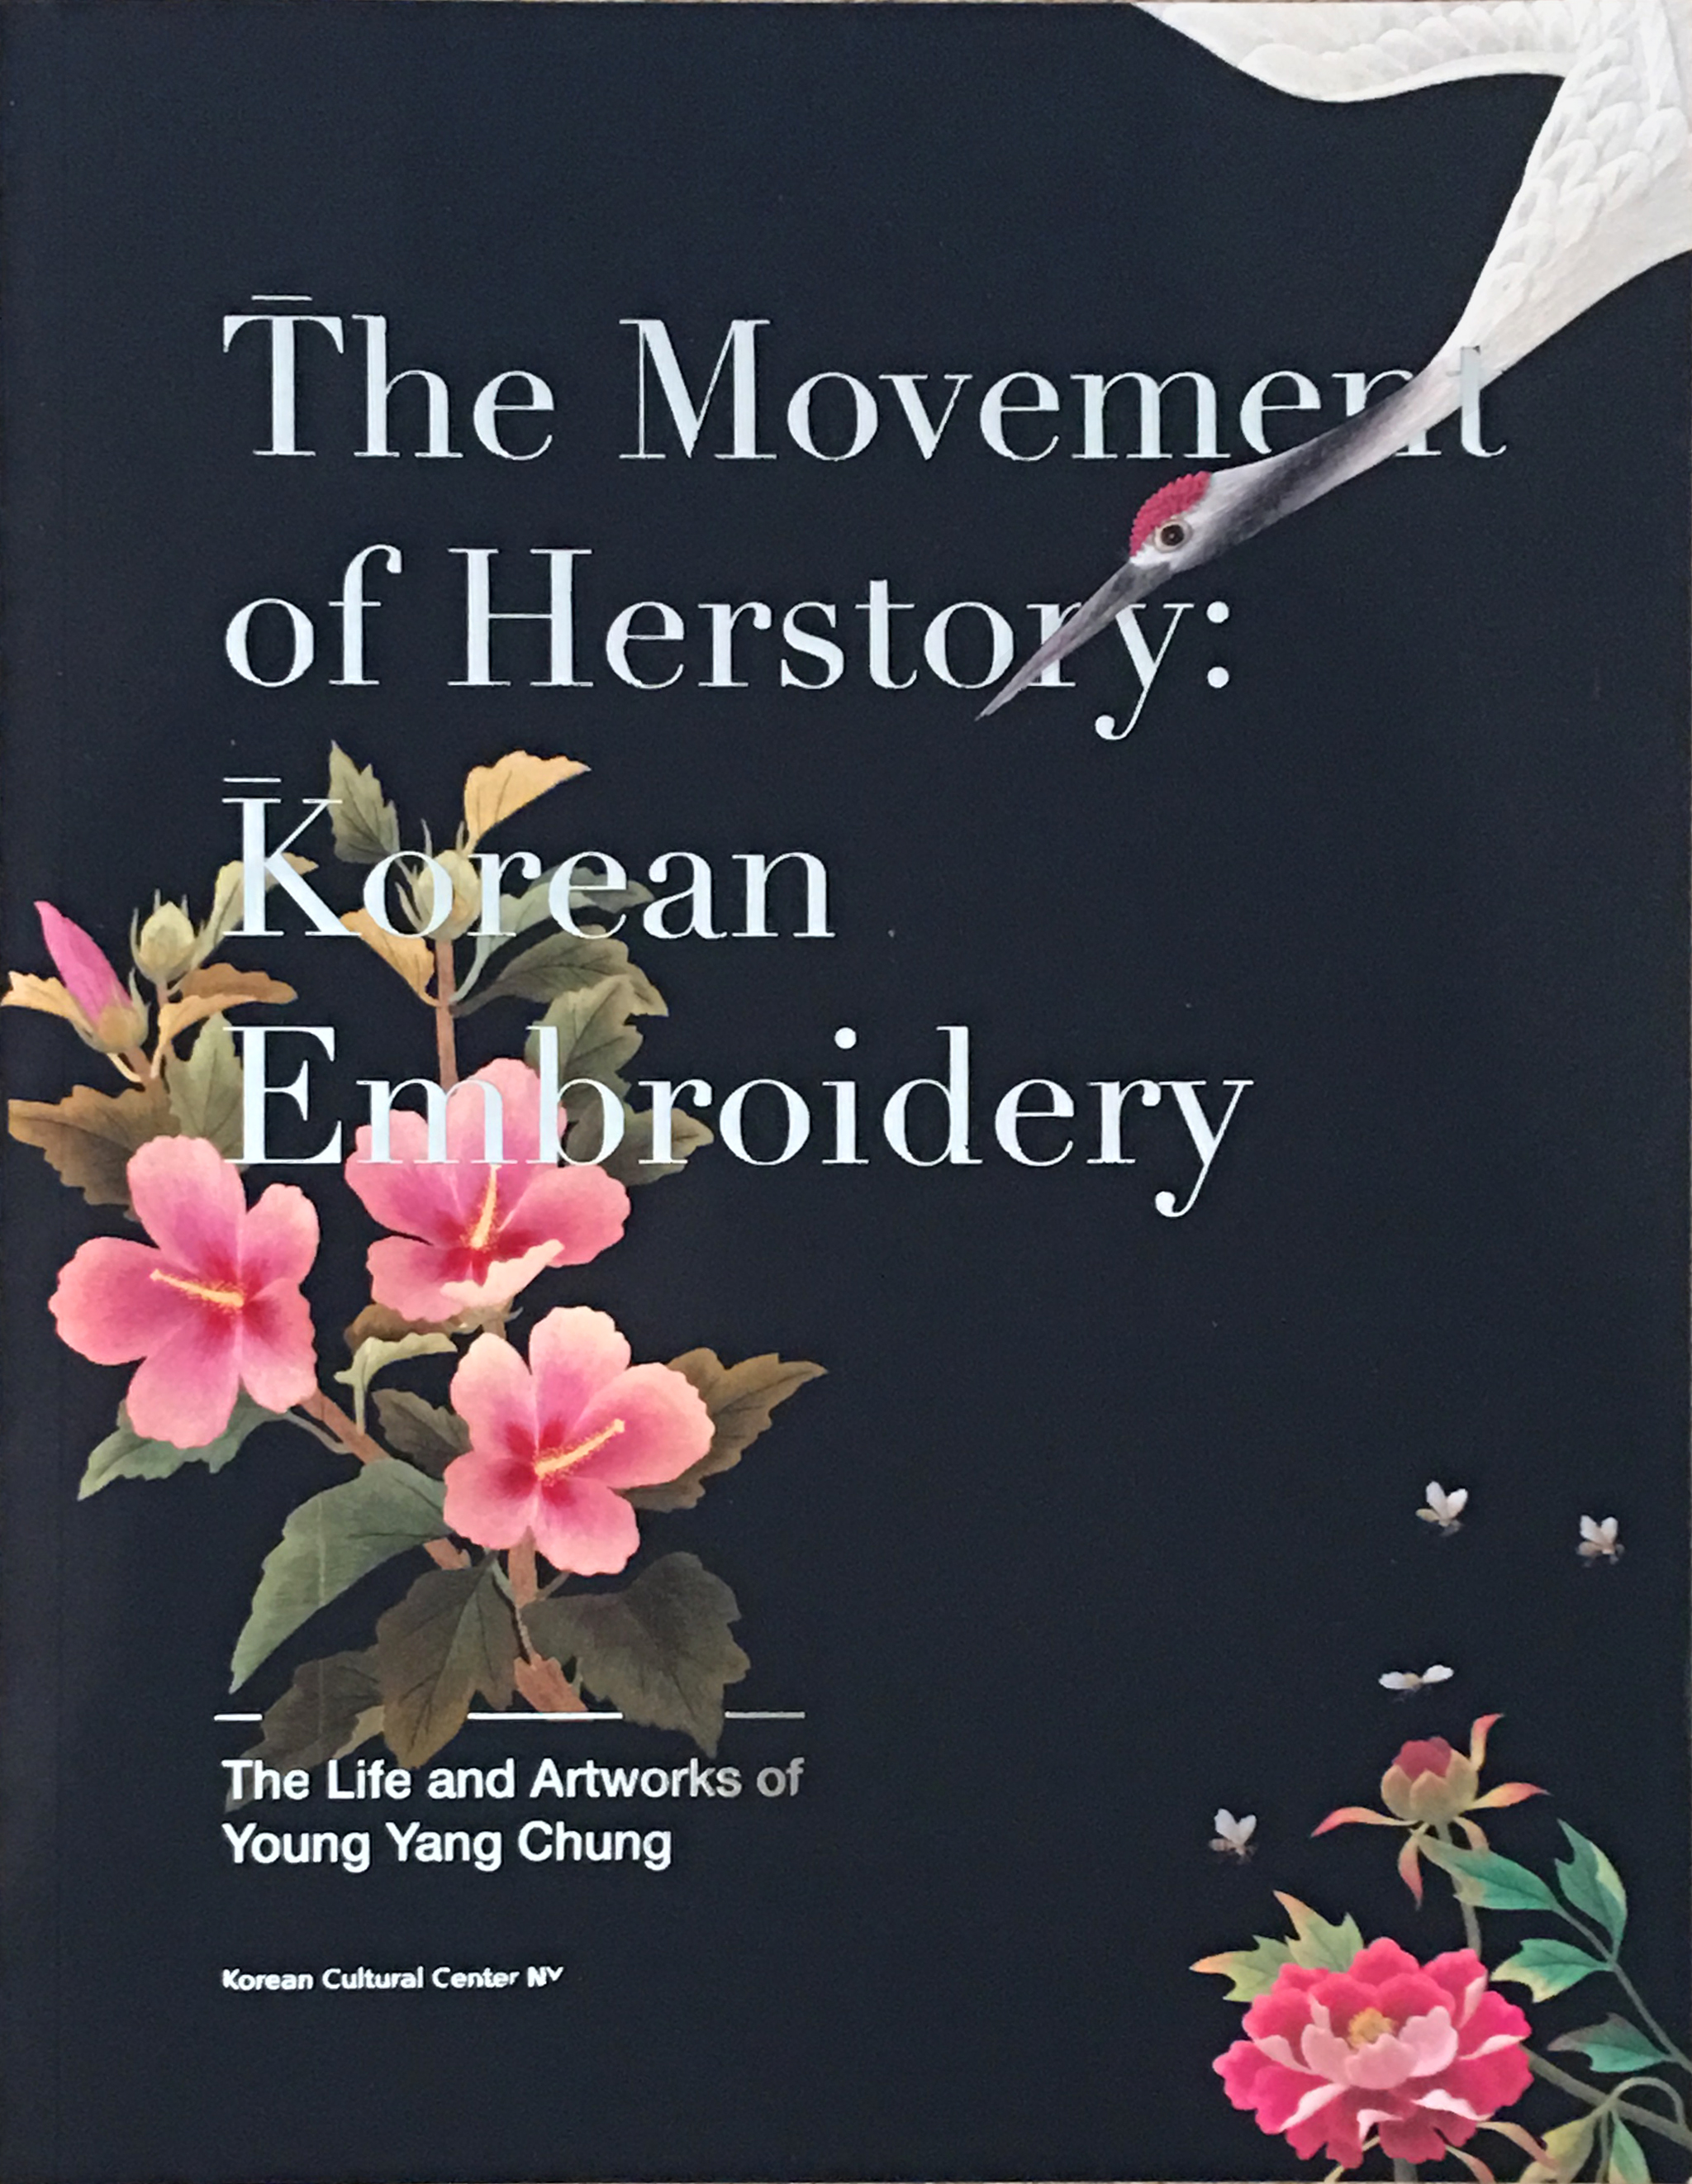 Findlay, Michael. (2017) 'An Appreciation', The Movement of Herstory: Korean Embroidery: The Life and Artworks of Young Yang Chung, New York: The Korean Cultural Center New York, p. 52-53.